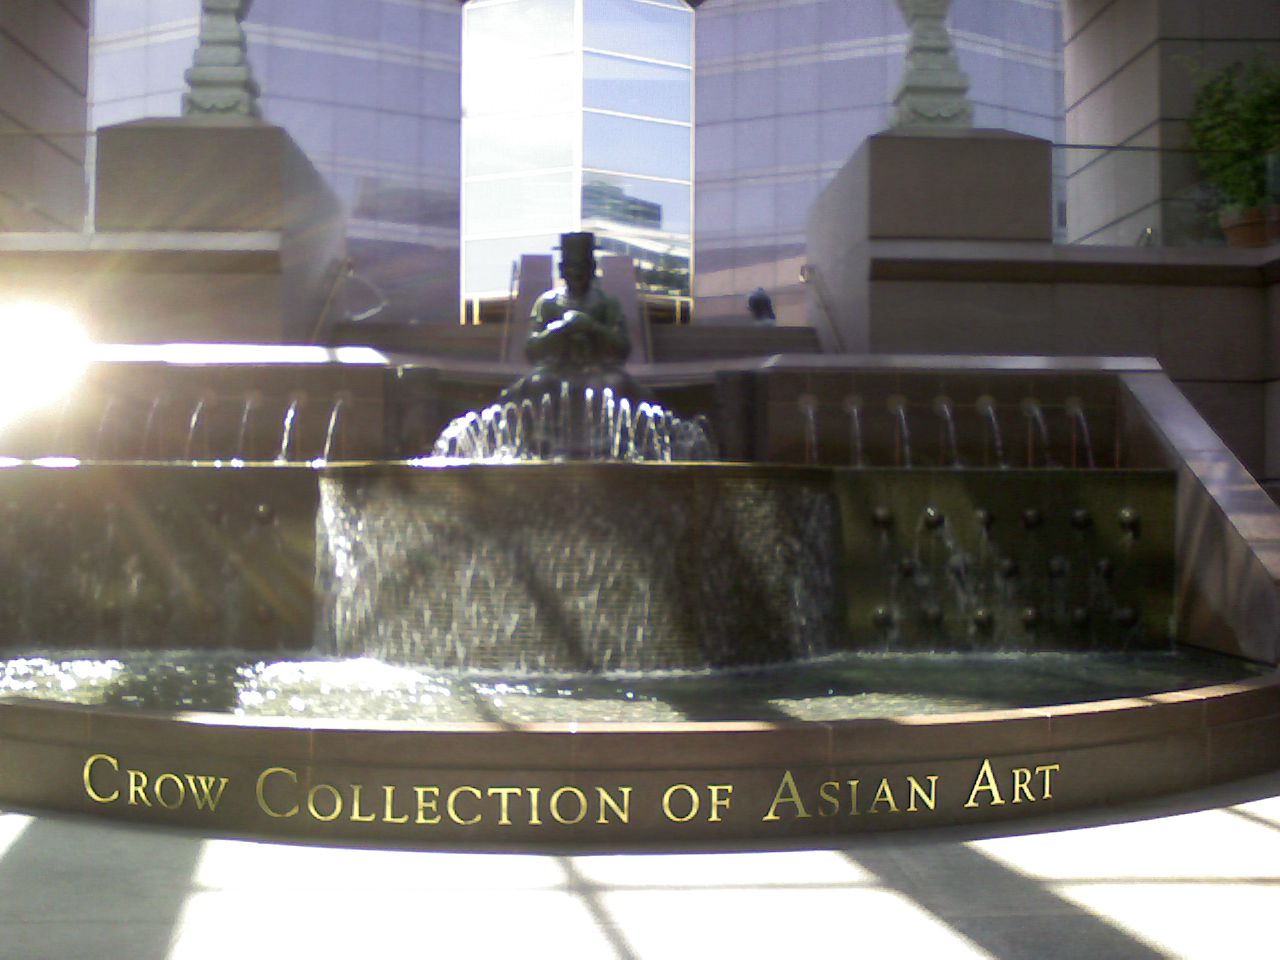 Trammell Crow Collection of Asian Art